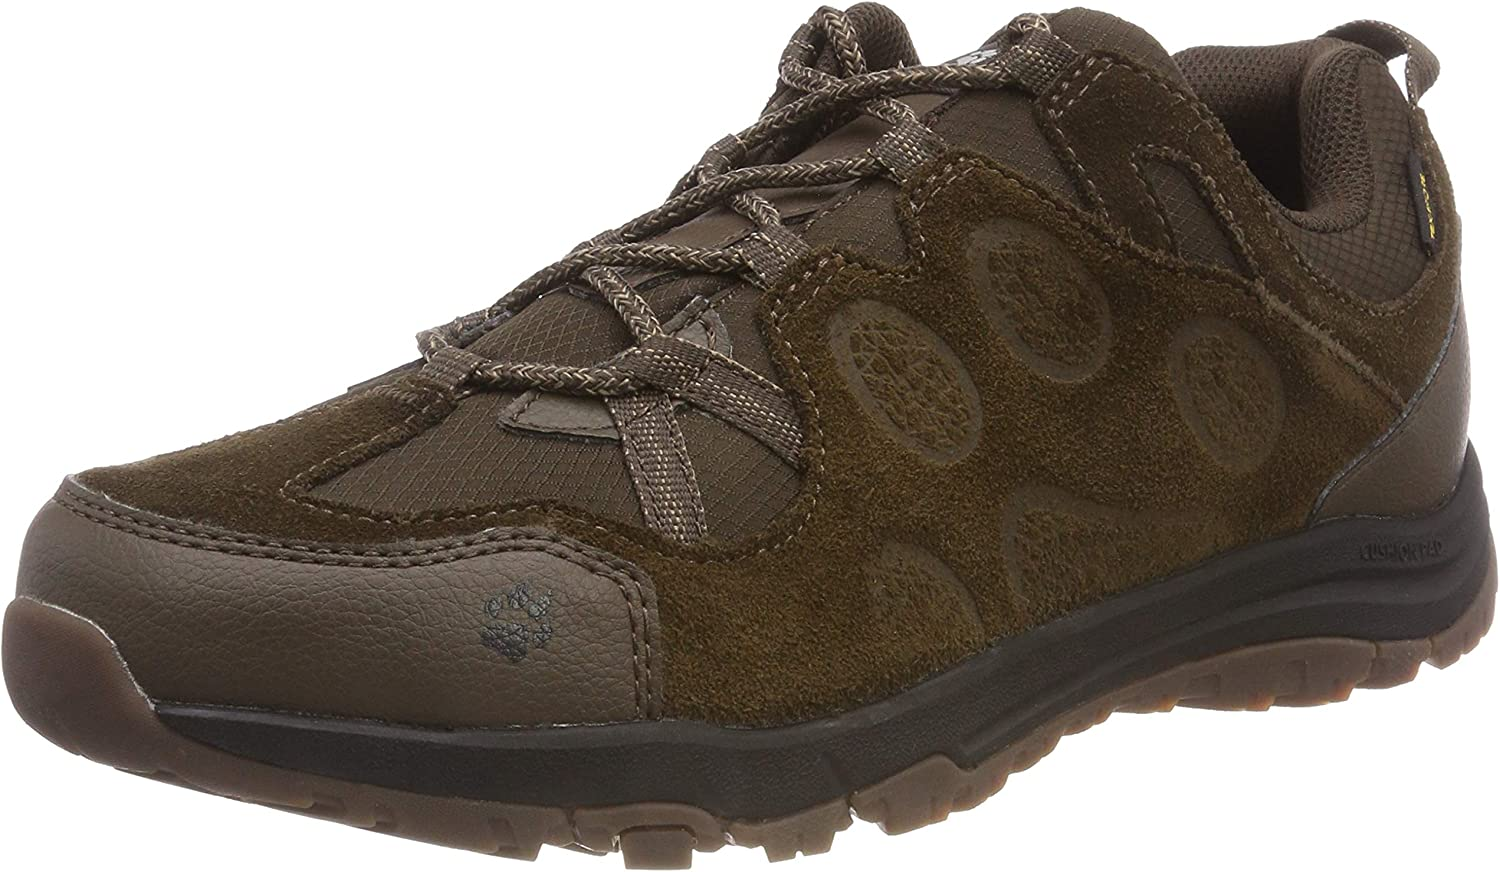 Jack Wolfskin Rocksand Texapore Low M Men's Waterproof Hiking shoes